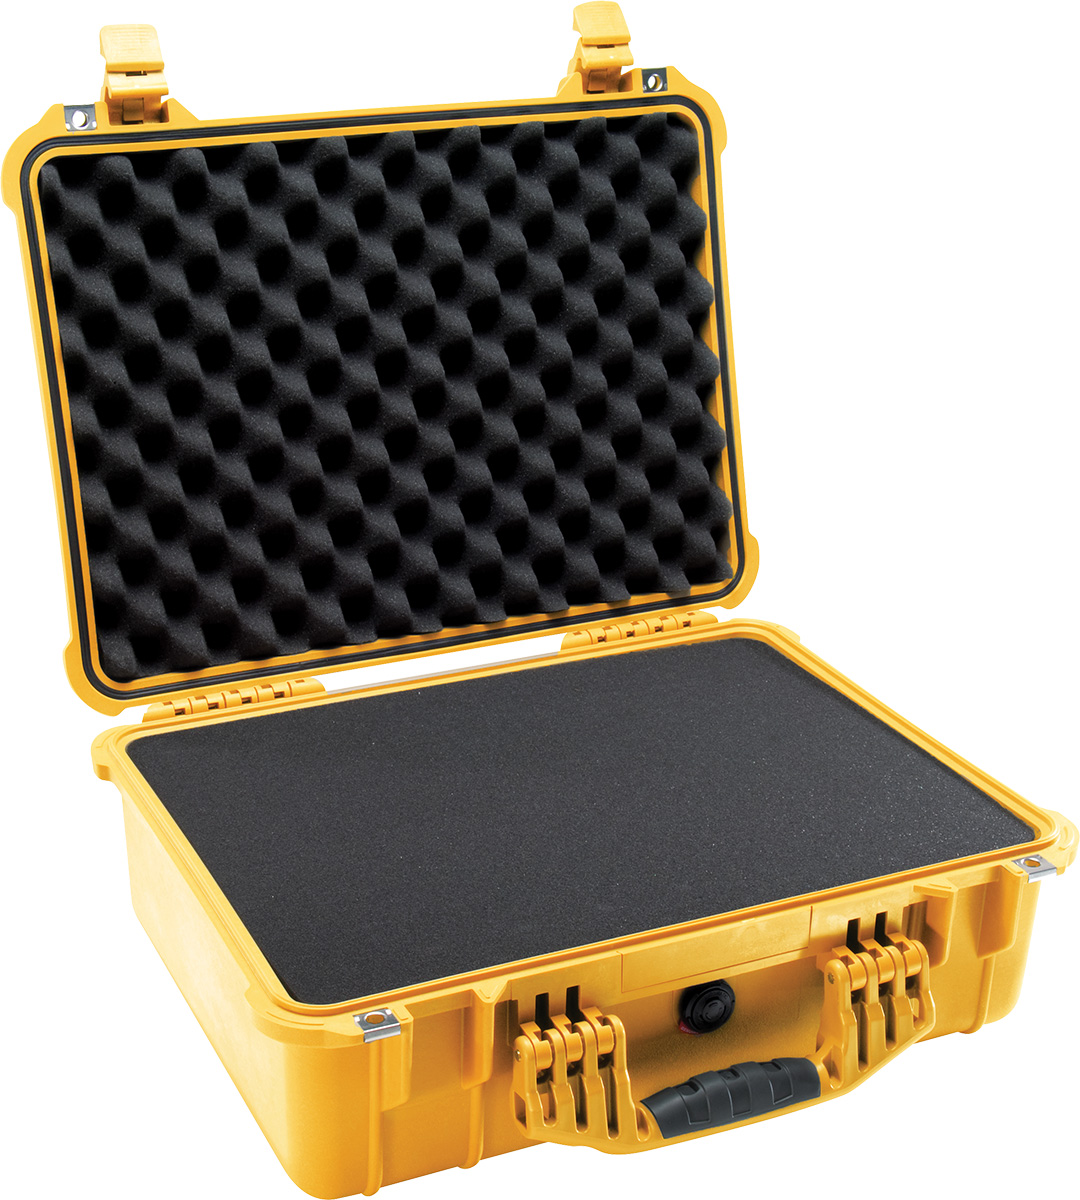 pelican 1520 yellow foam dustproof case